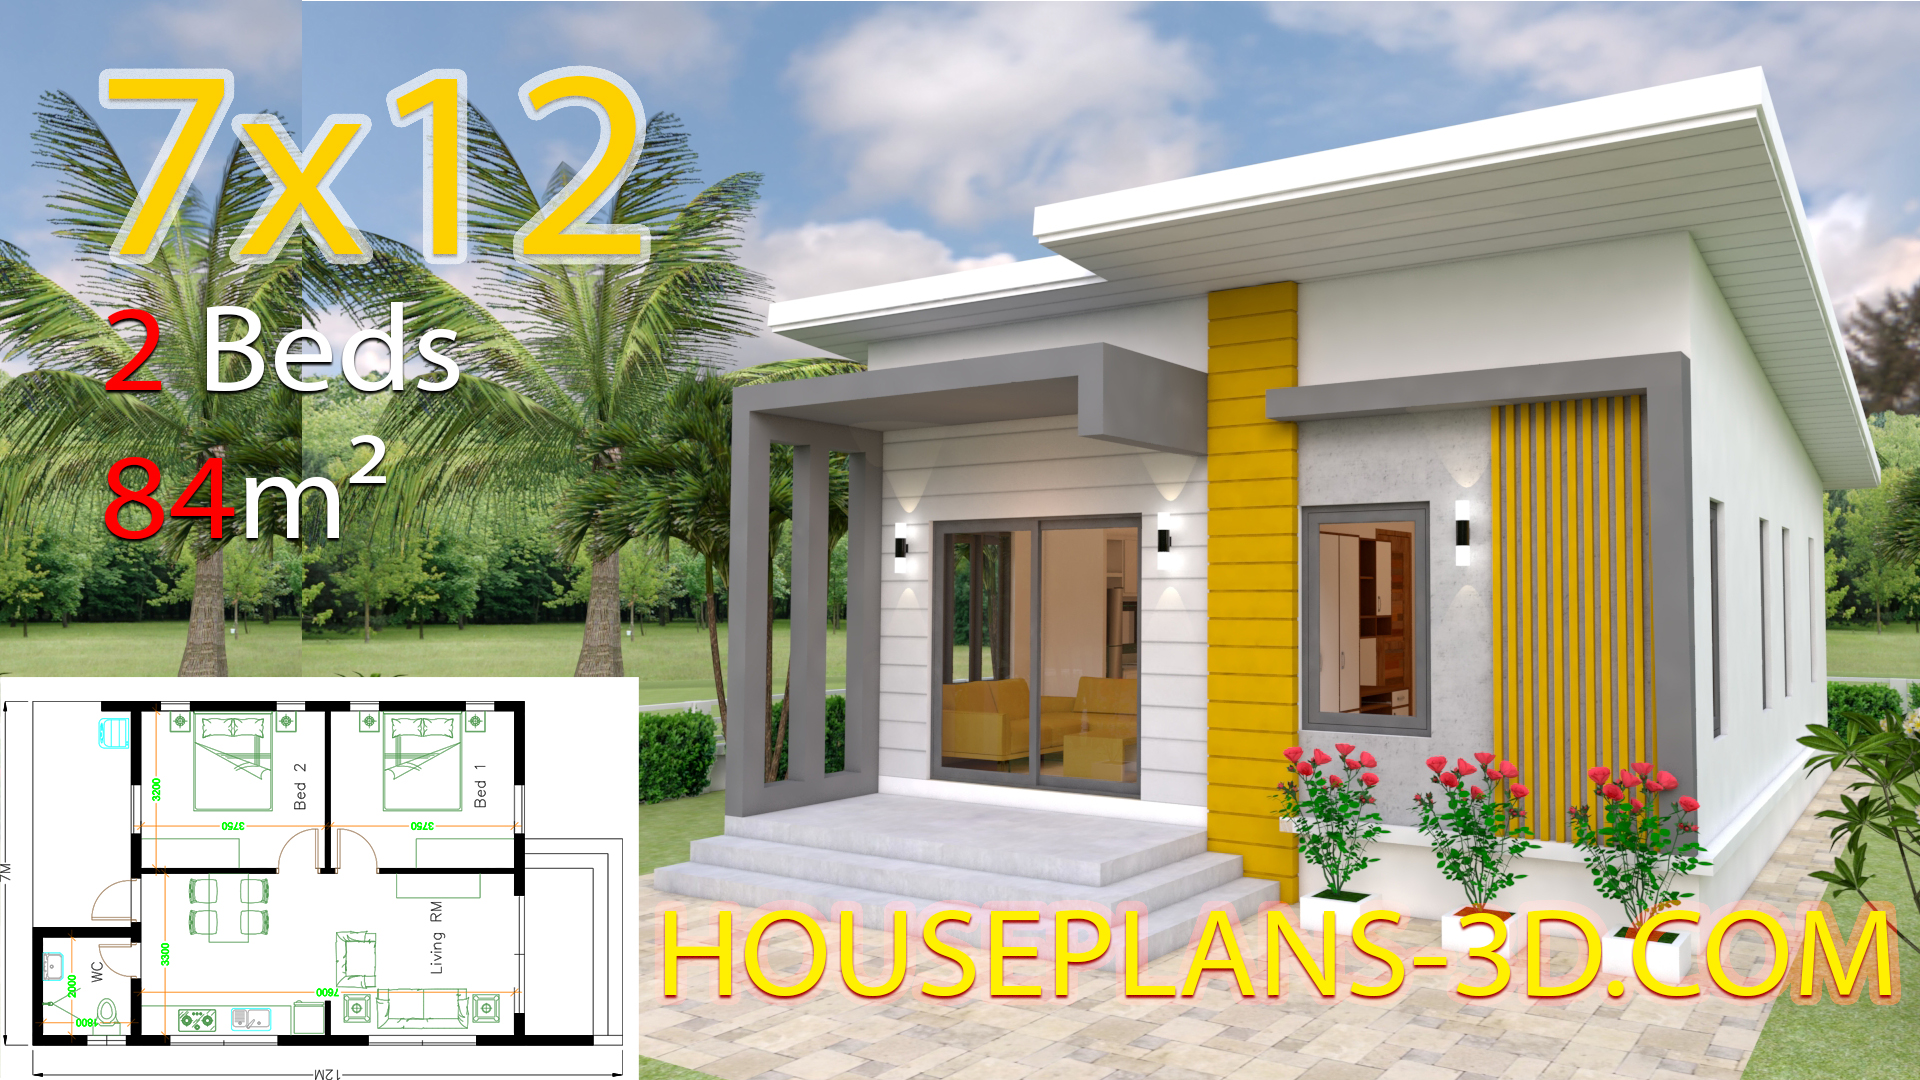 House Design Plans 7x12 with 2 Bedrooms Full Plans - House Plans 3D